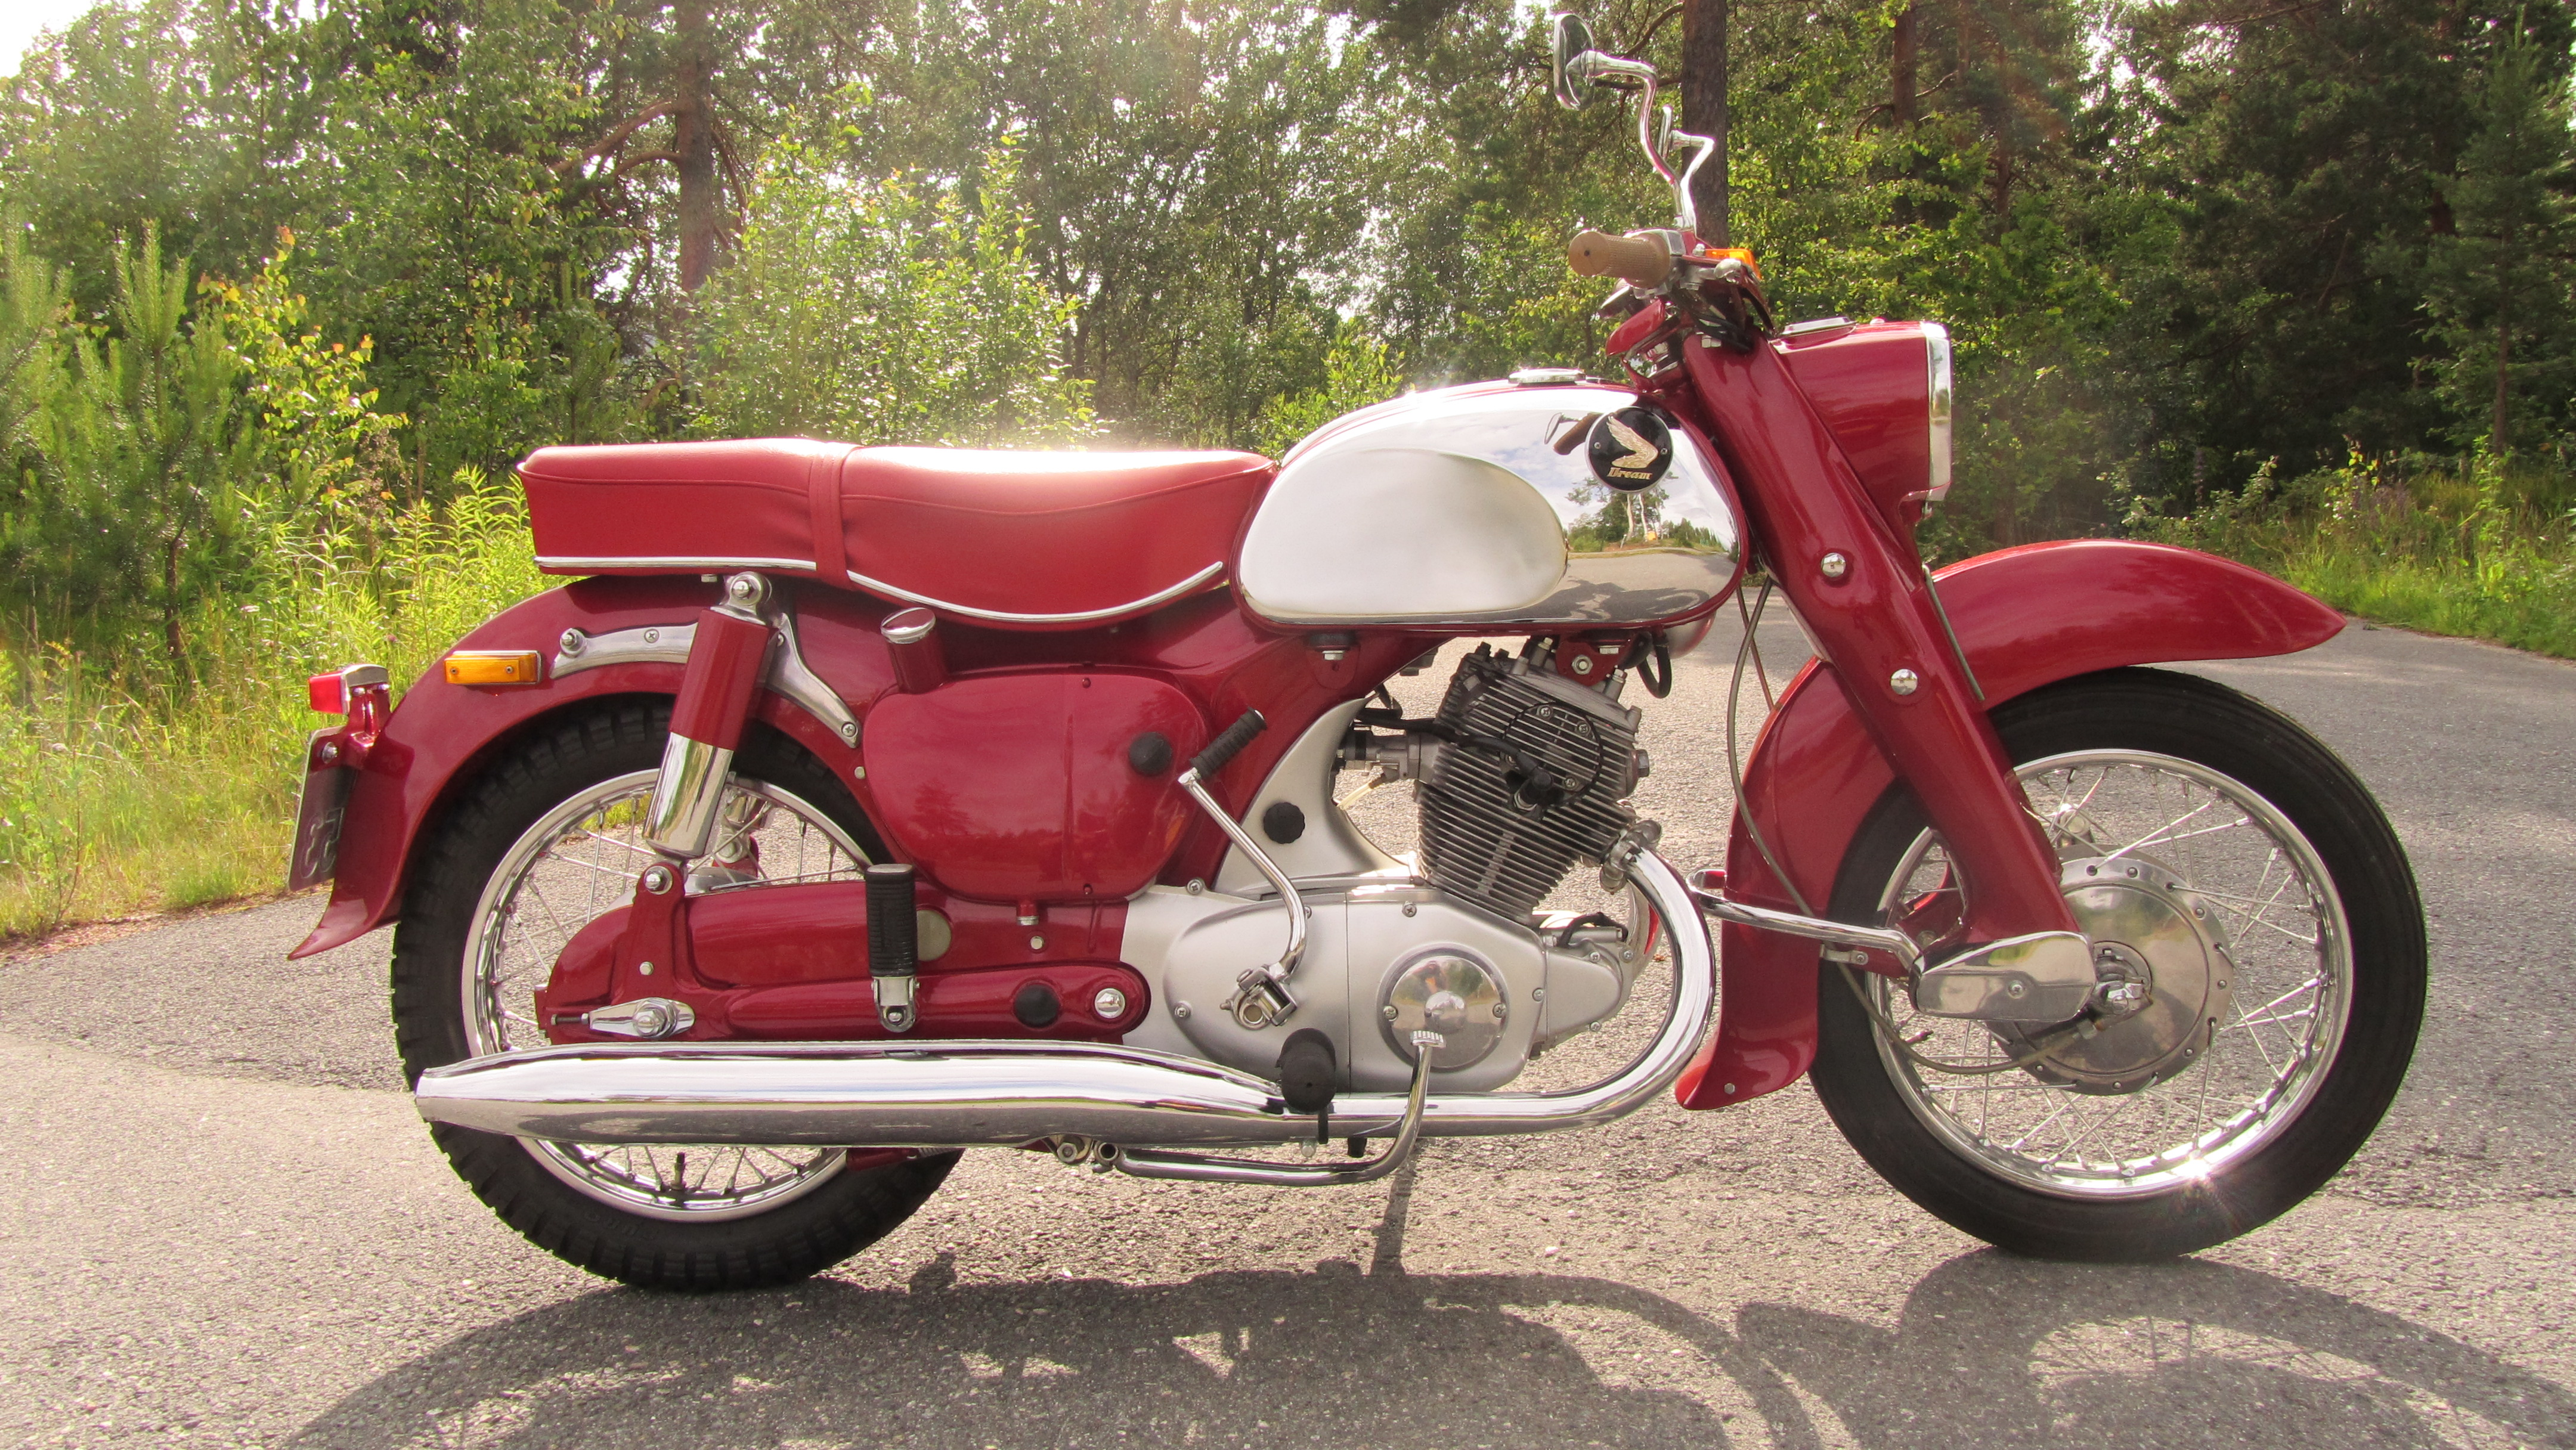 1960 honda c71 dream 250 | the veneration | pinterest | honda and cars